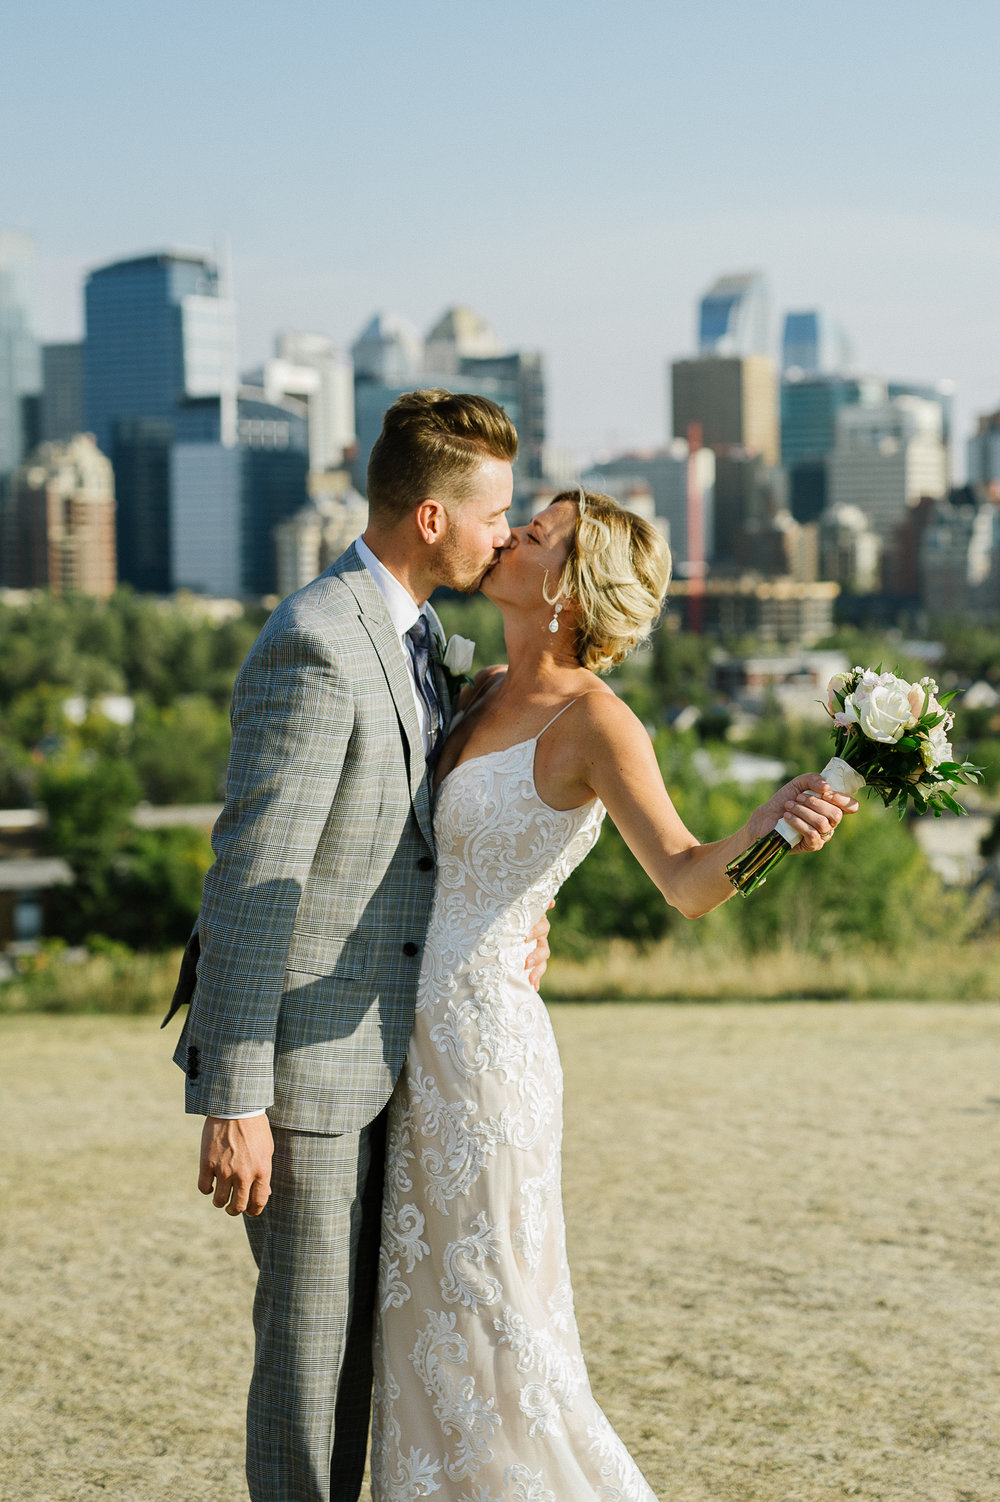 Calgary_Wedding_Photography_Melanie_Jeremy_Elopement_2017 0128.jpg